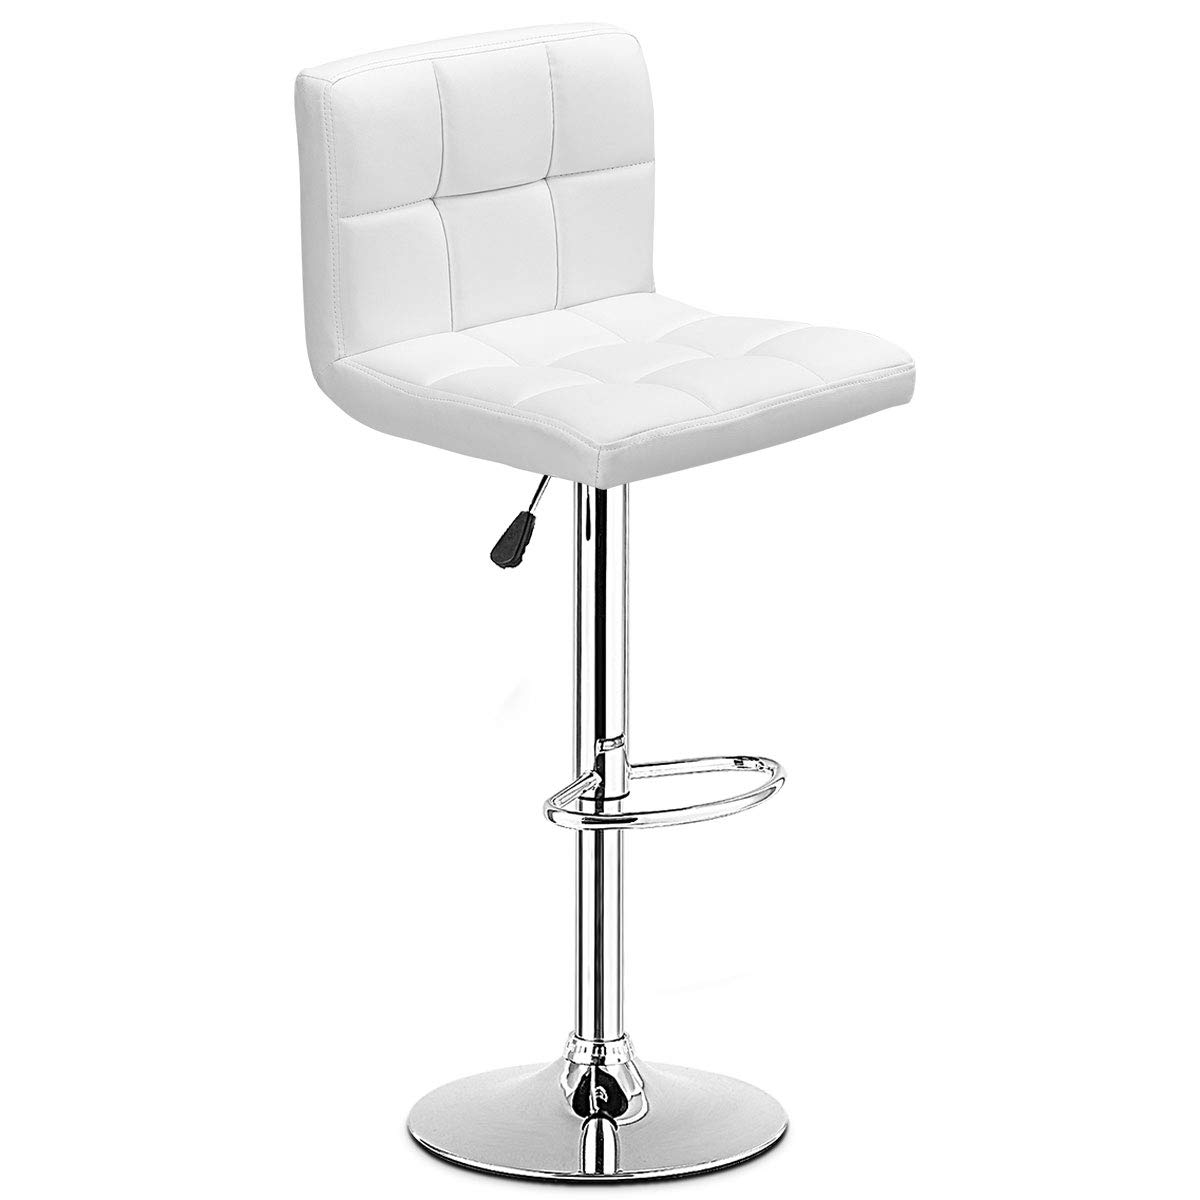 COSTWAY Bar Stool, Modern Swivel Adjustable Armless Barstools, Square Counter Height PU Leather Bar Stools for Kitchen Dining Living Bistro Pub Chair Counter Back Barstool(White, 1 Stool) by COSTWAY